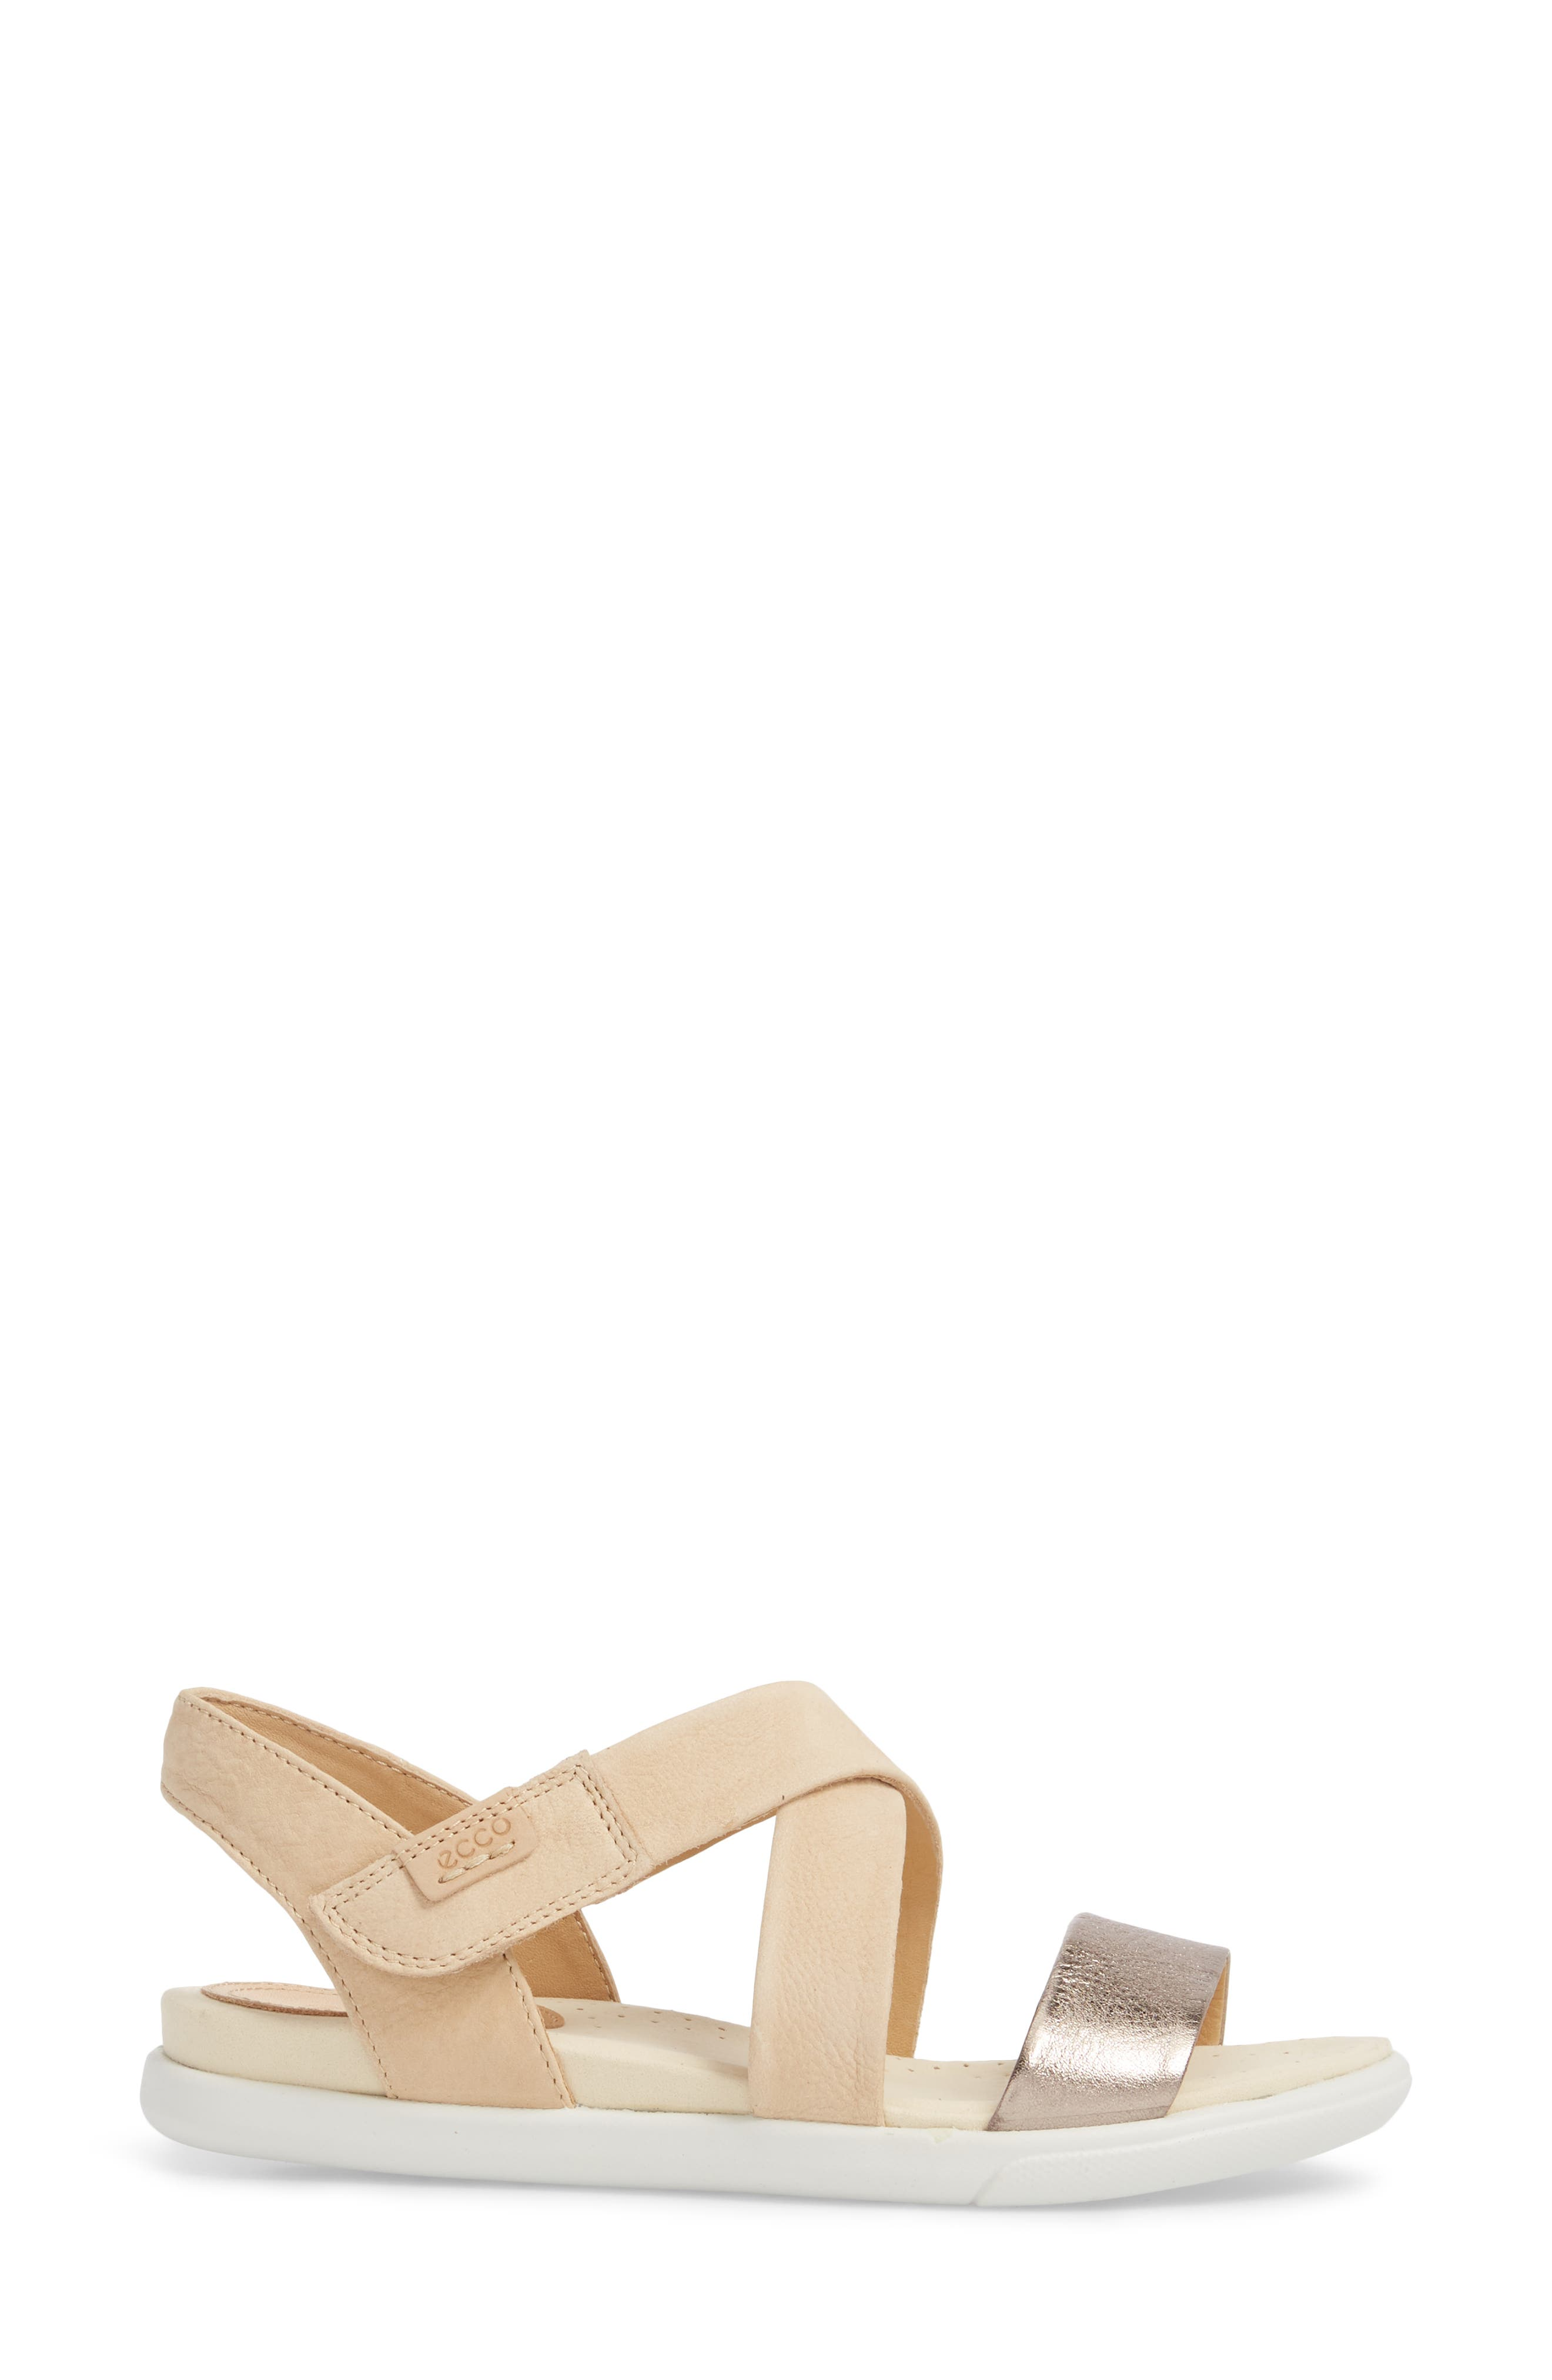 Damara Cross-Strap Sandal,                             Alternate thumbnail 17, color,